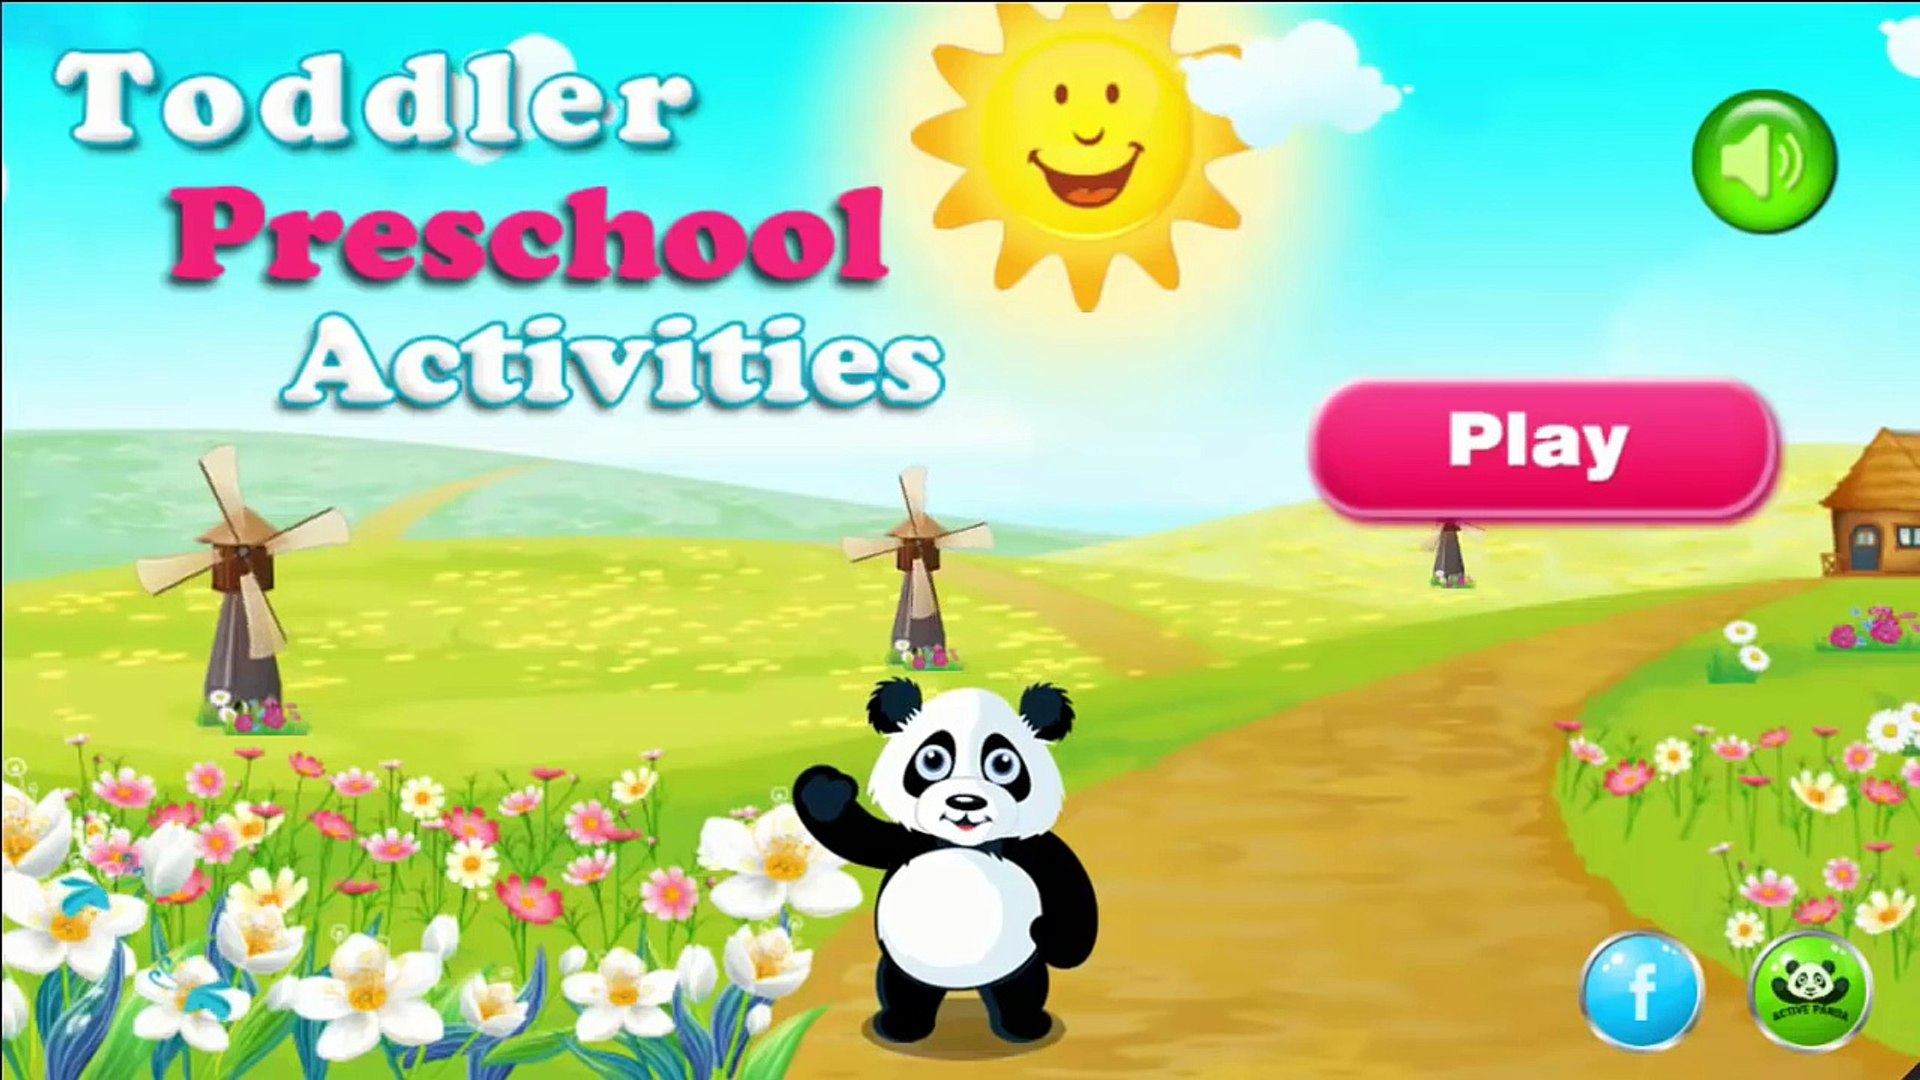 Toddler Preschool Activities - Education - Videos Games for Kids - Girls - Baby Android